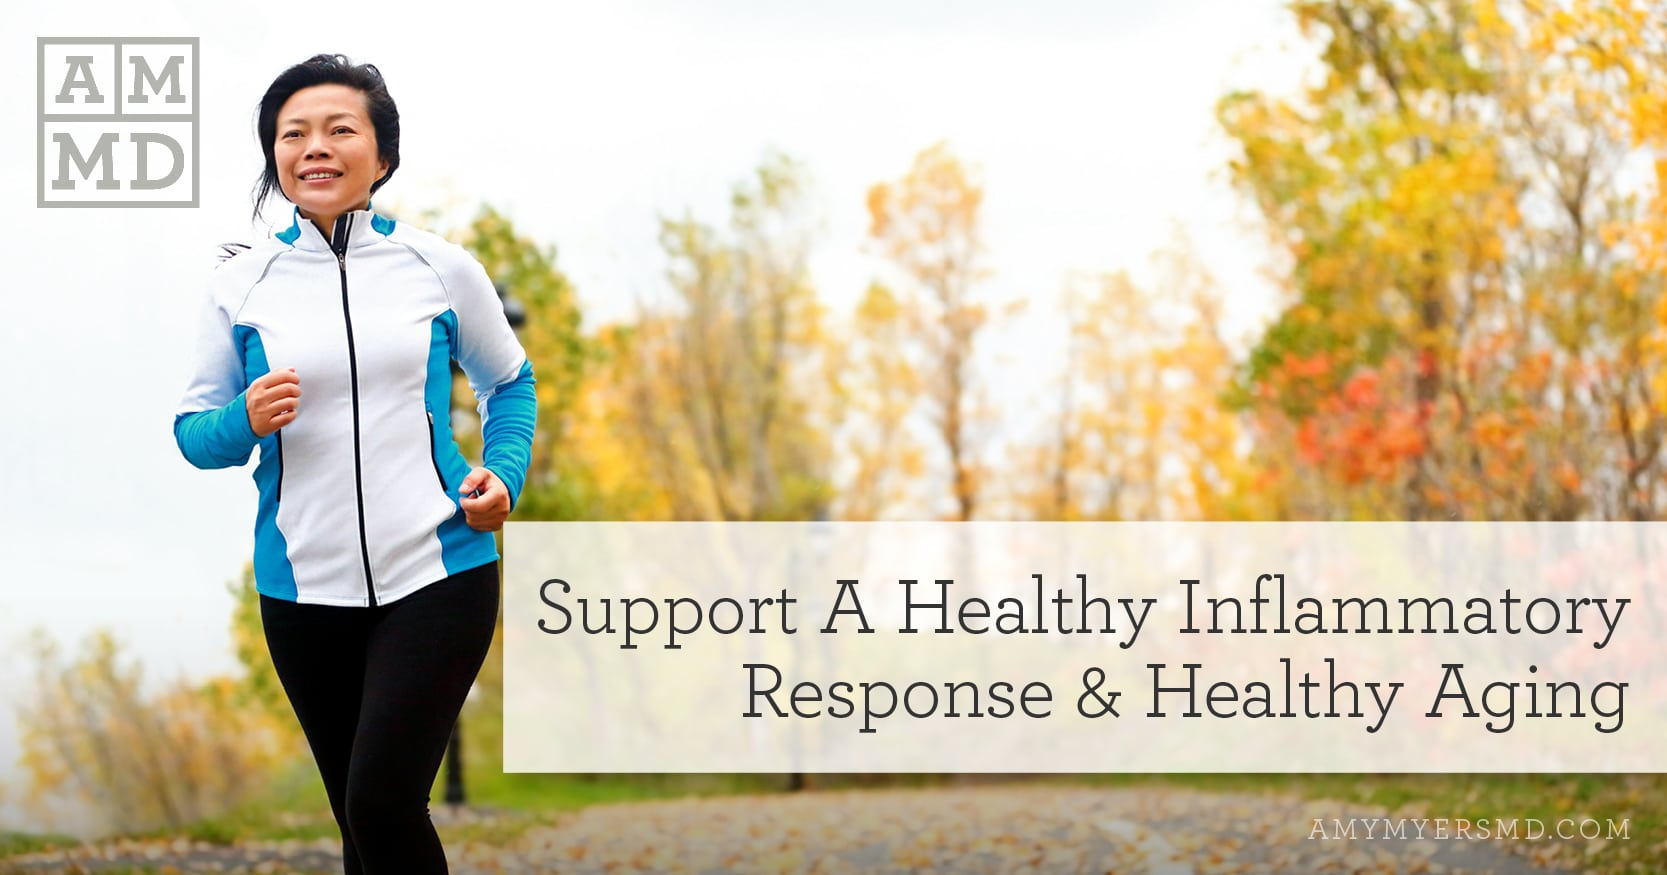 Support A Healthy Inflammatory Response & Healthy Aging - A Woman Jogging - Featured Image - Amy Myers MD